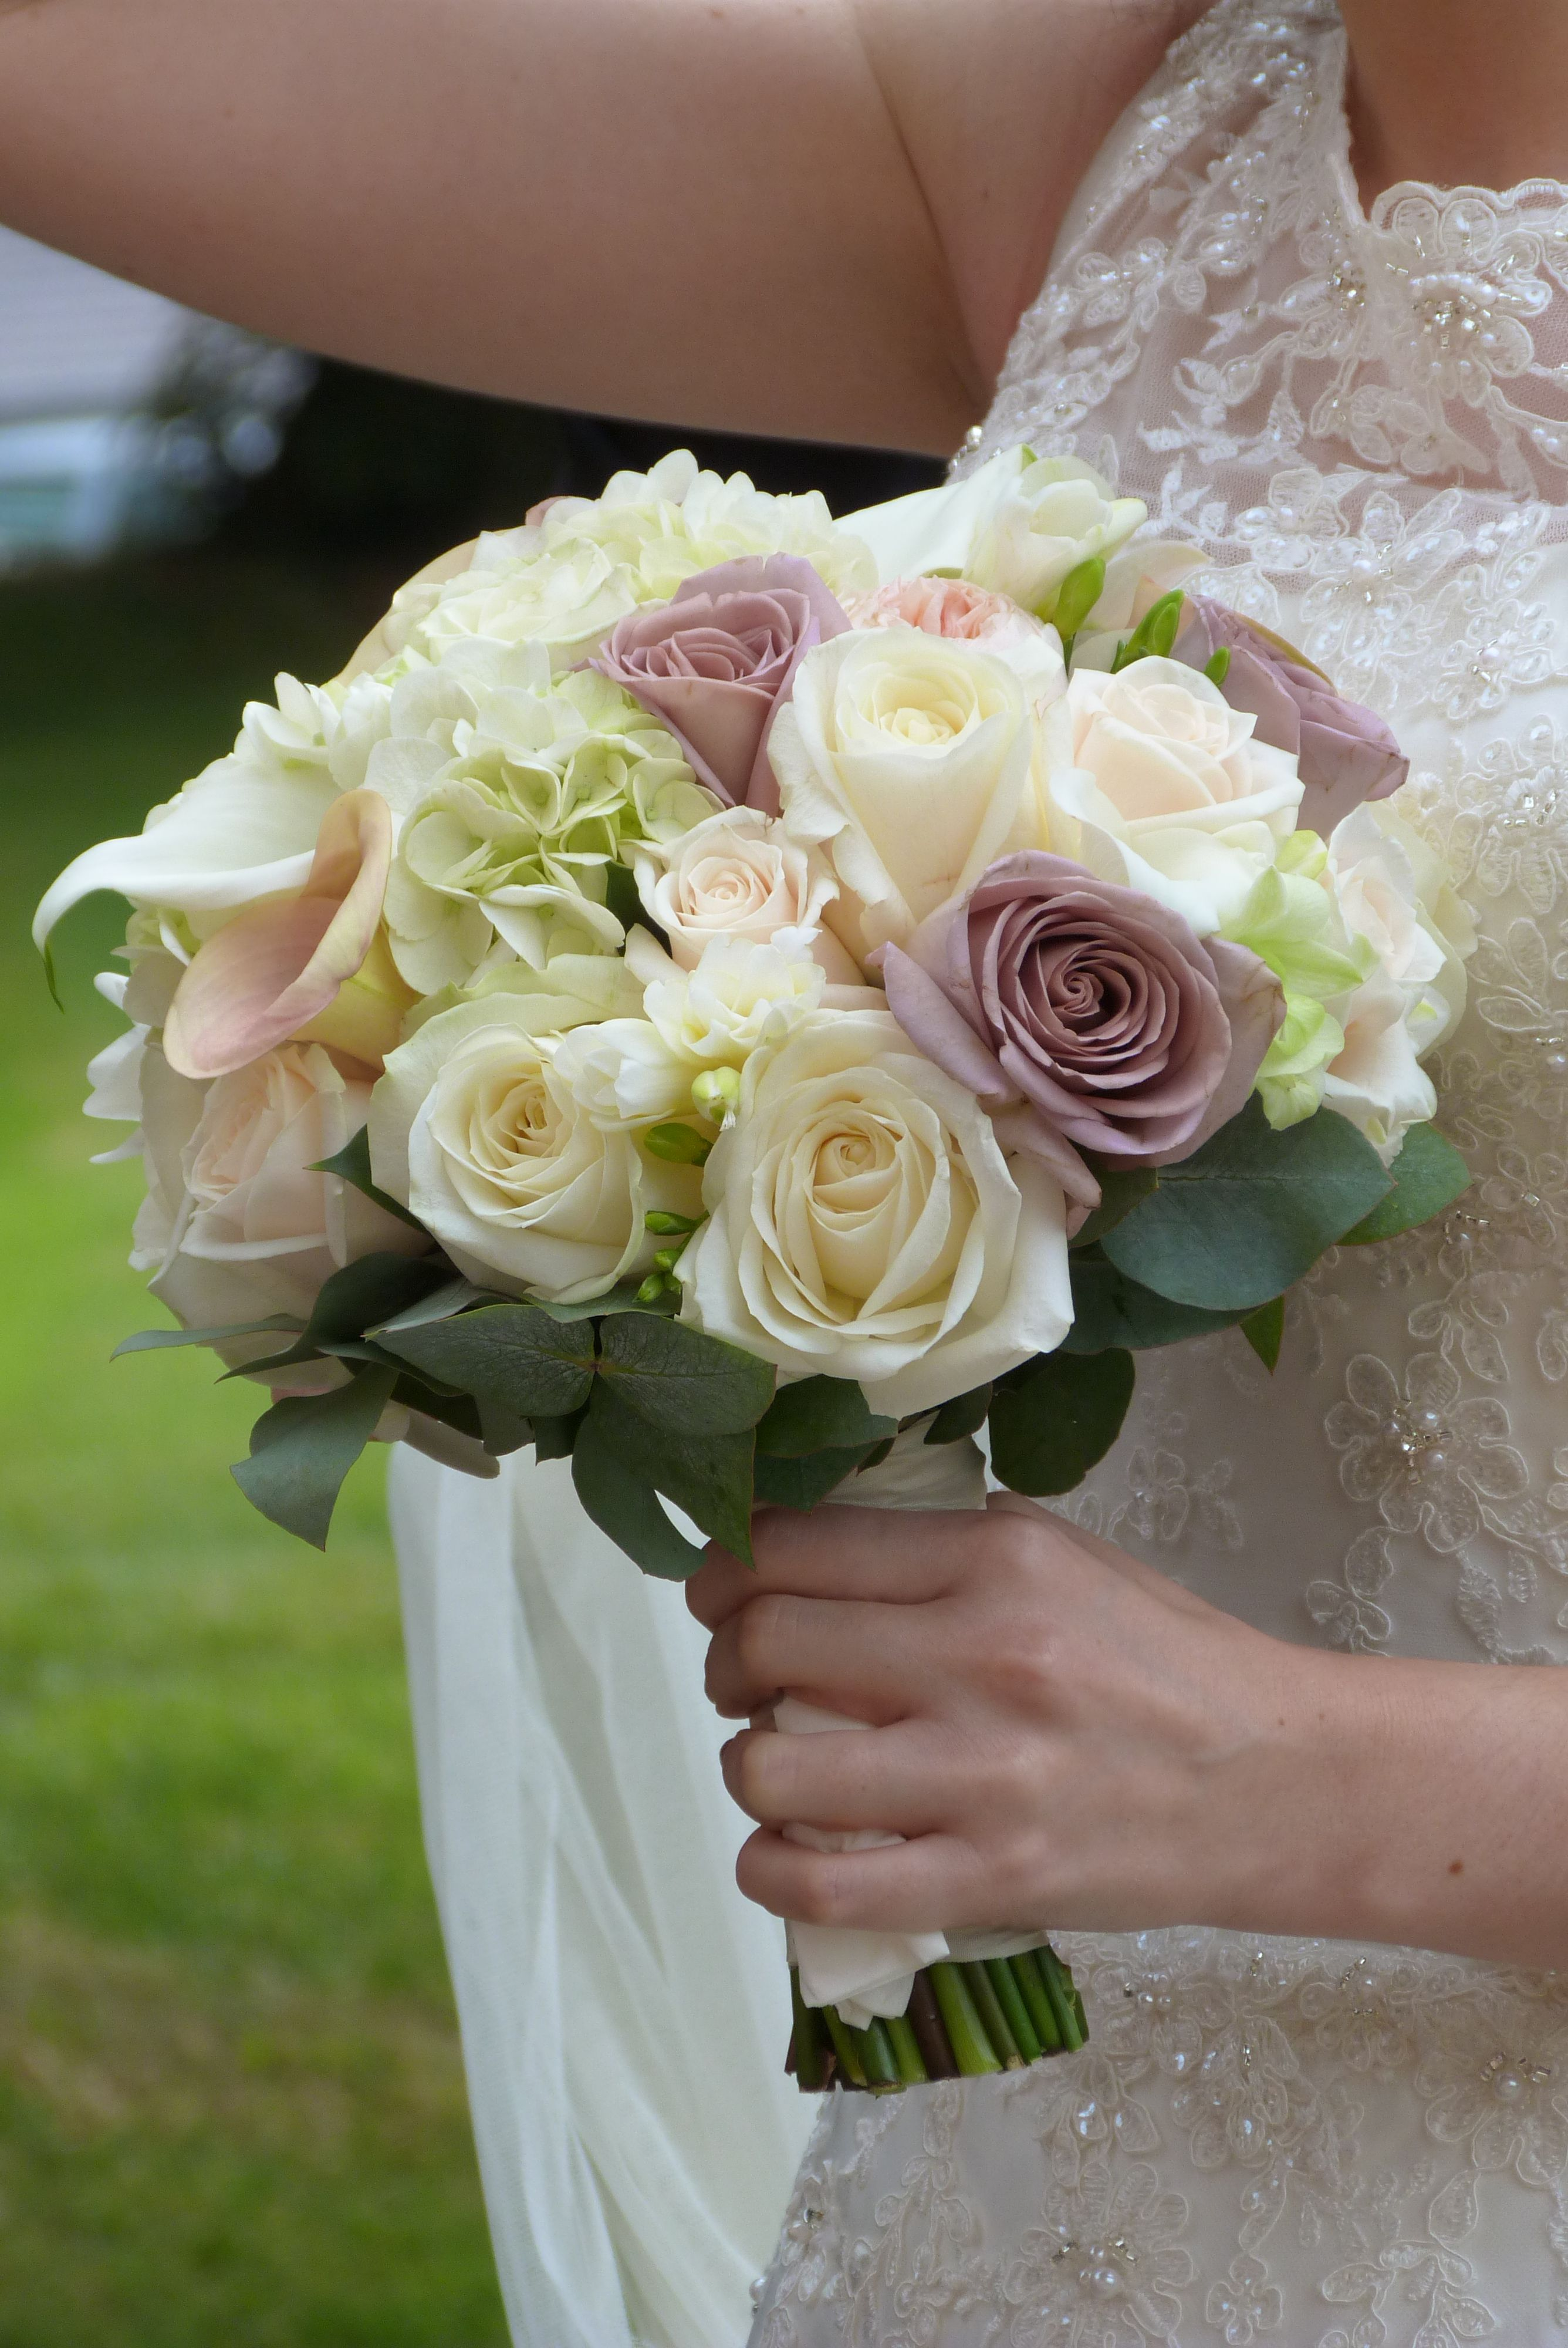 A vintageinspired pastel bridal bouquet including uamnesiau roses